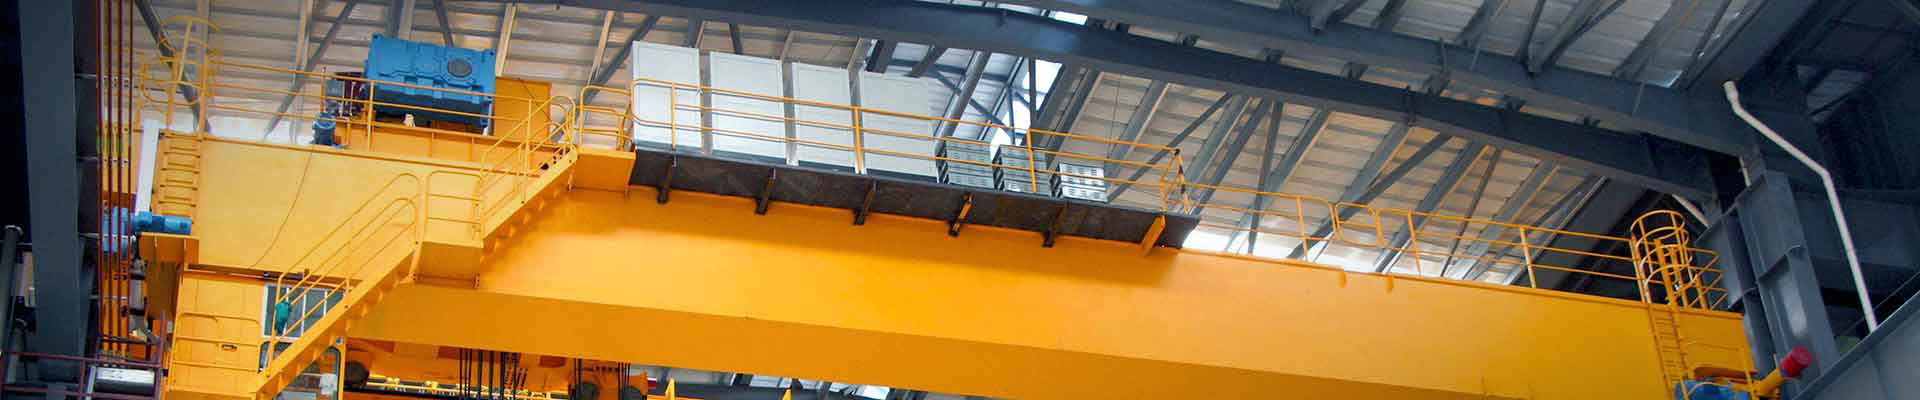 China heavy crane supplier and manufacturer